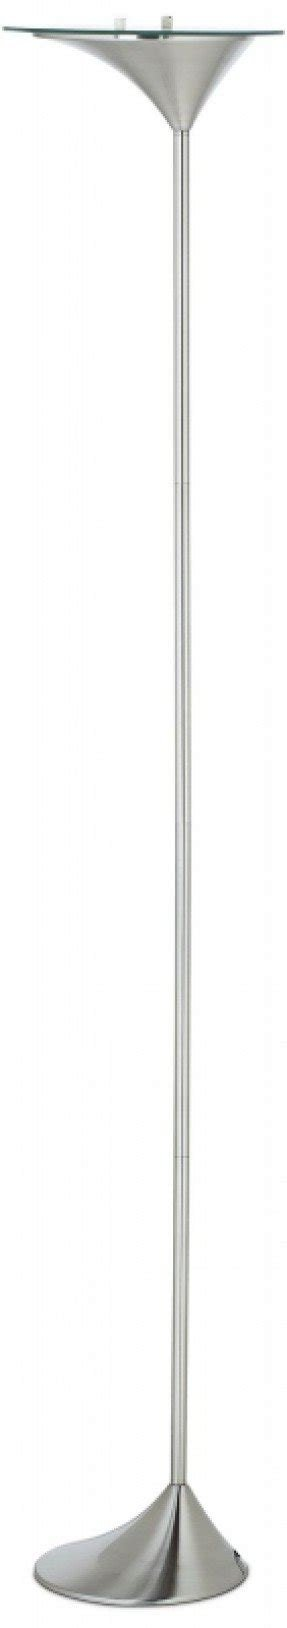 Best halogen floor lamp